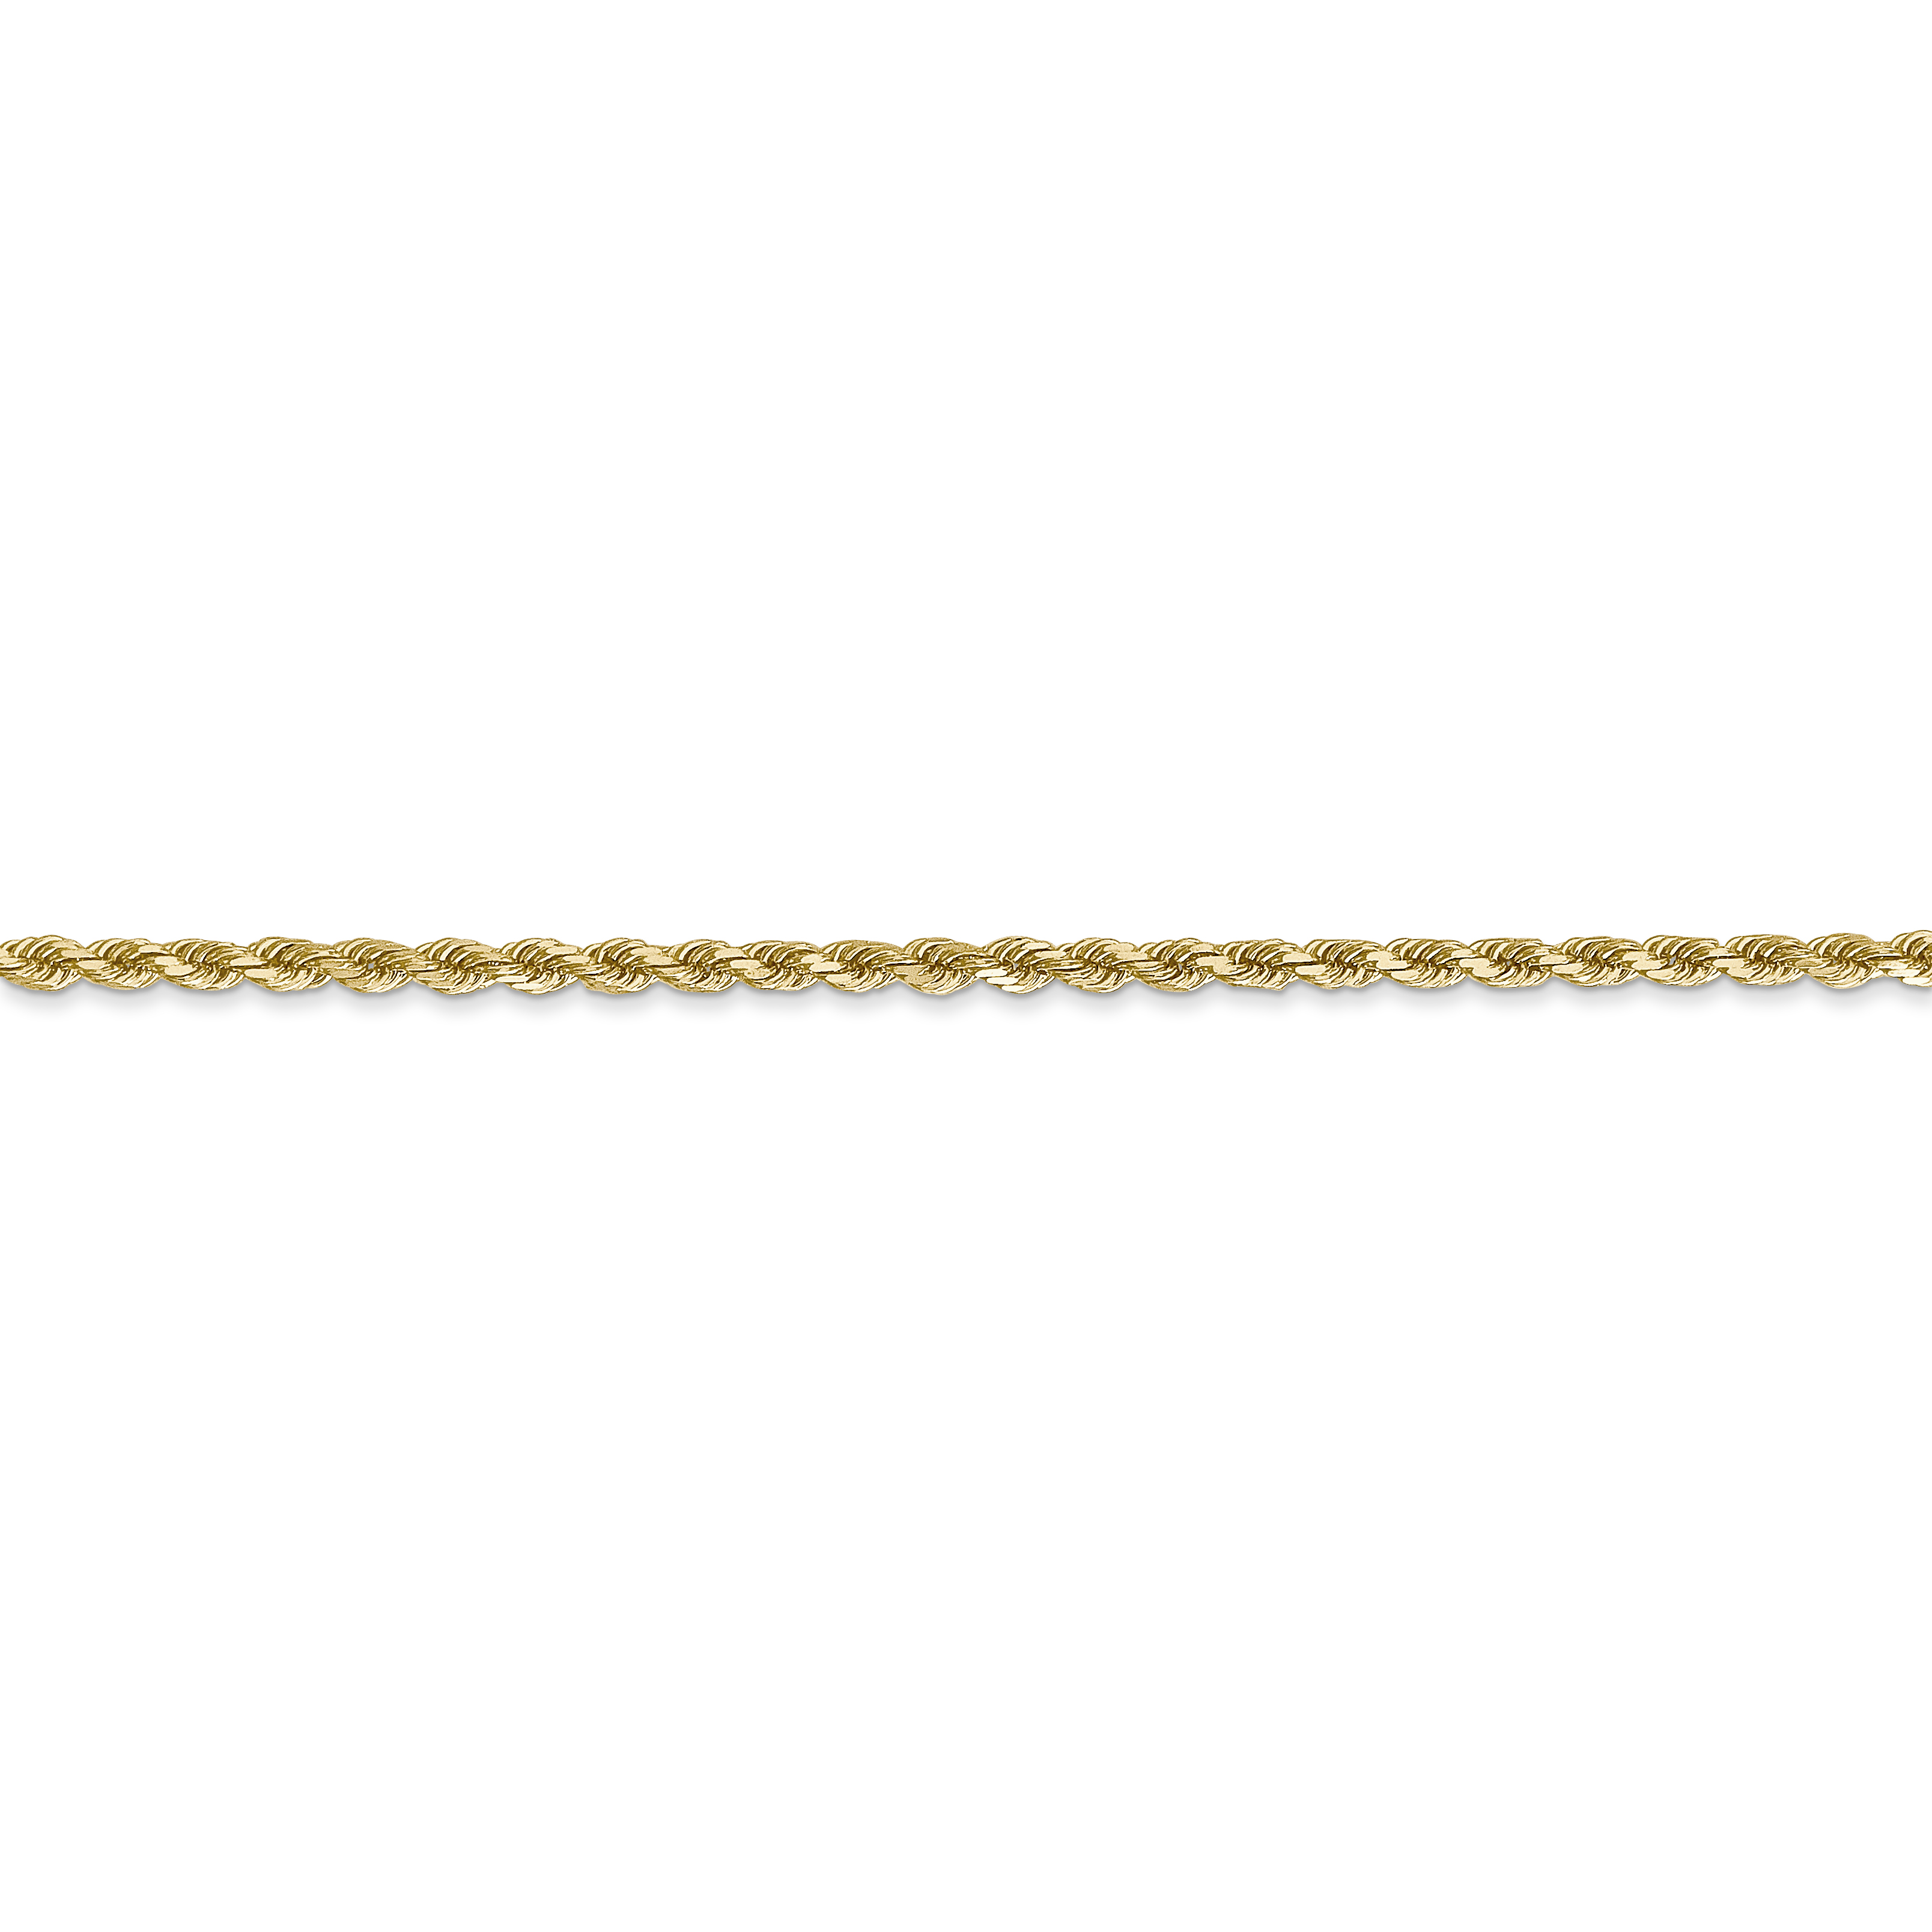 14k Yellow Gold 2mm Link Rope Chain Anklet Ankle Beach Bracelet Handmade Fine Jewelry Gifts For Women For Her - image 2 de 4